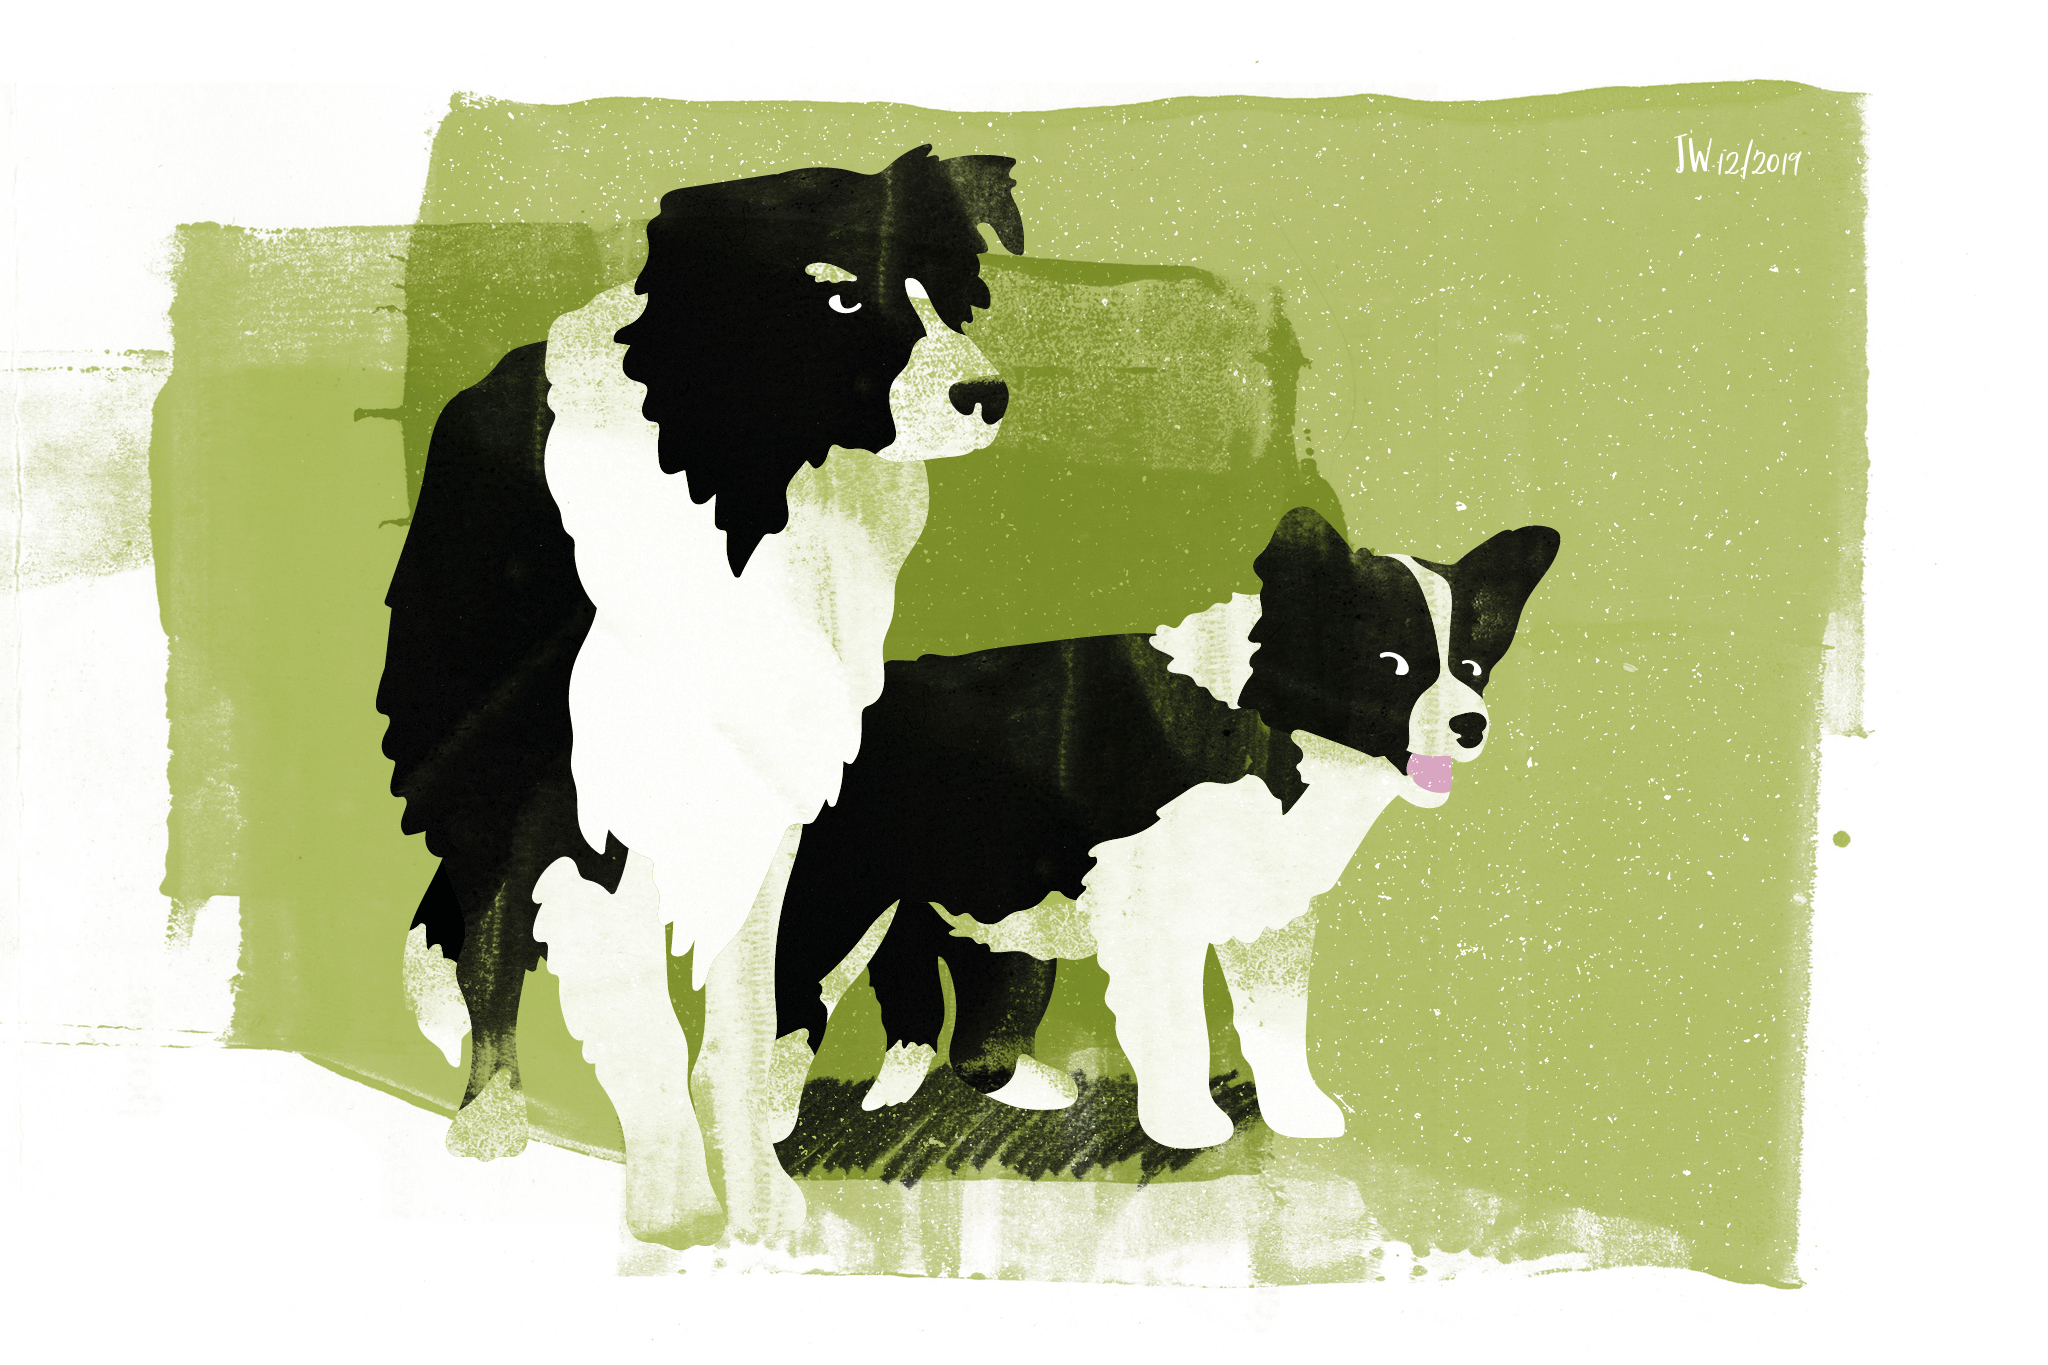 Border Collie, Weihnachtsmärchen, Illustration: Johannes Willwacher